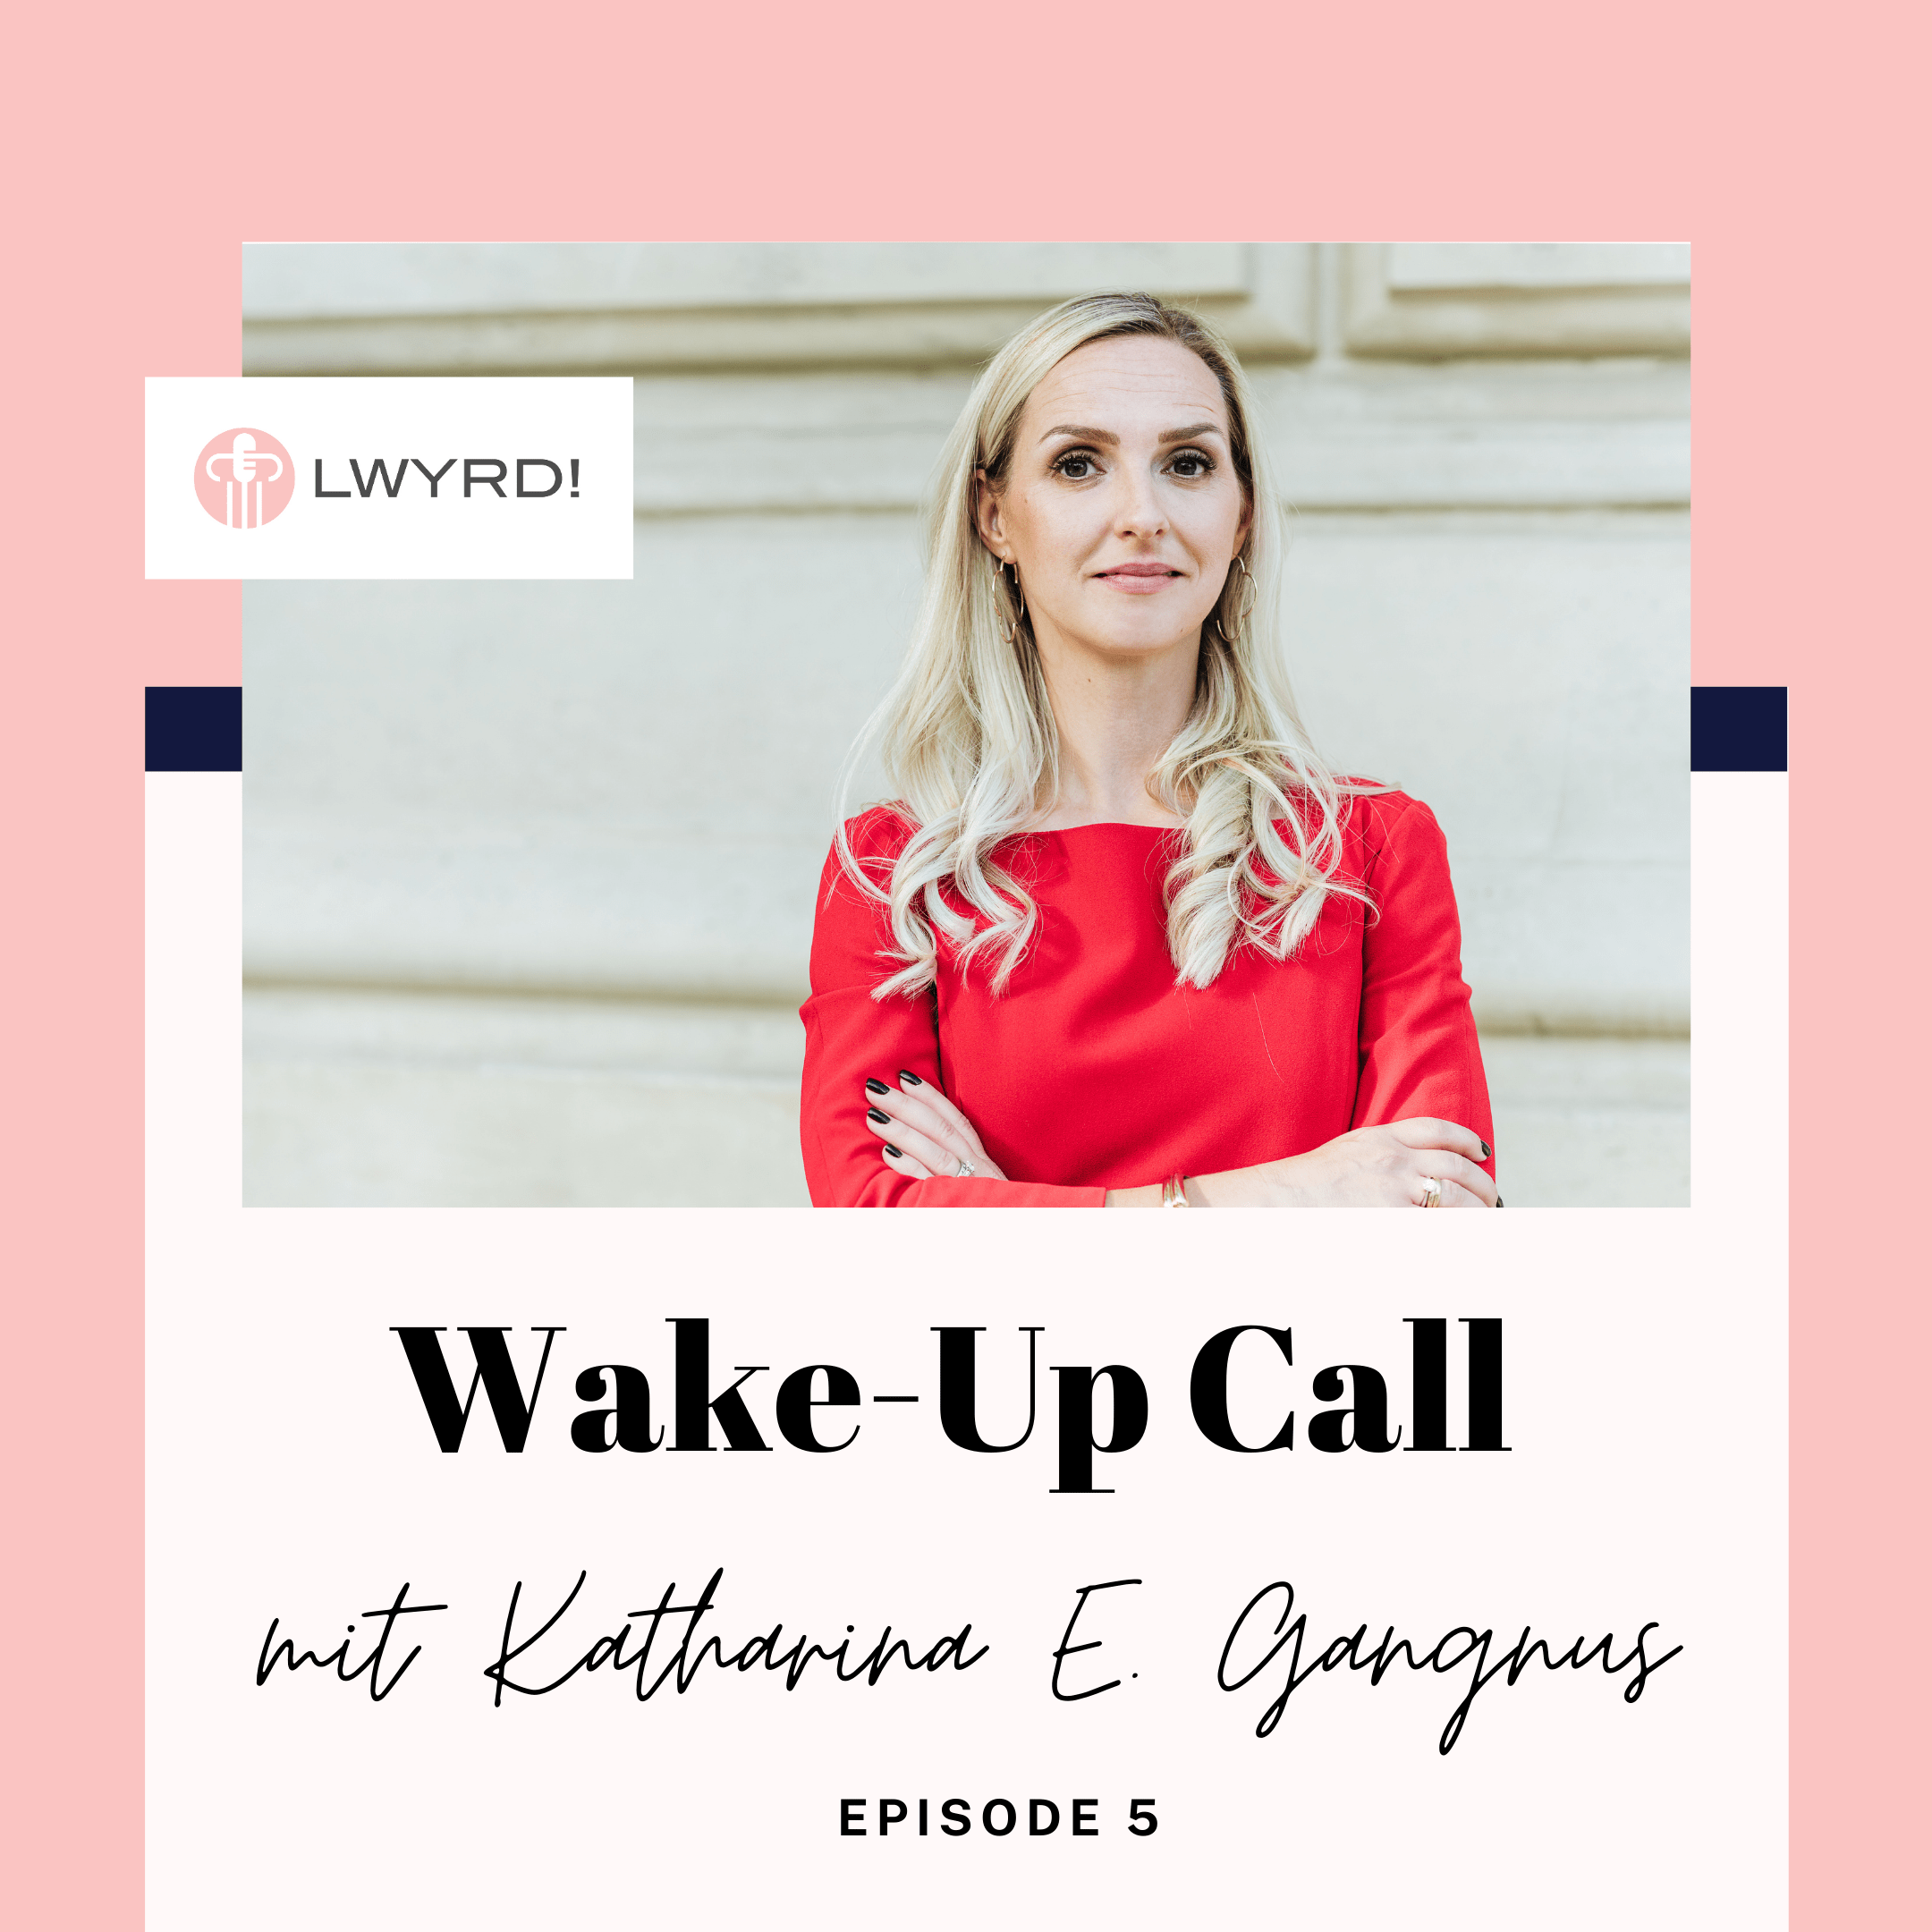 LWYRD! Wake-up Call Episode 5